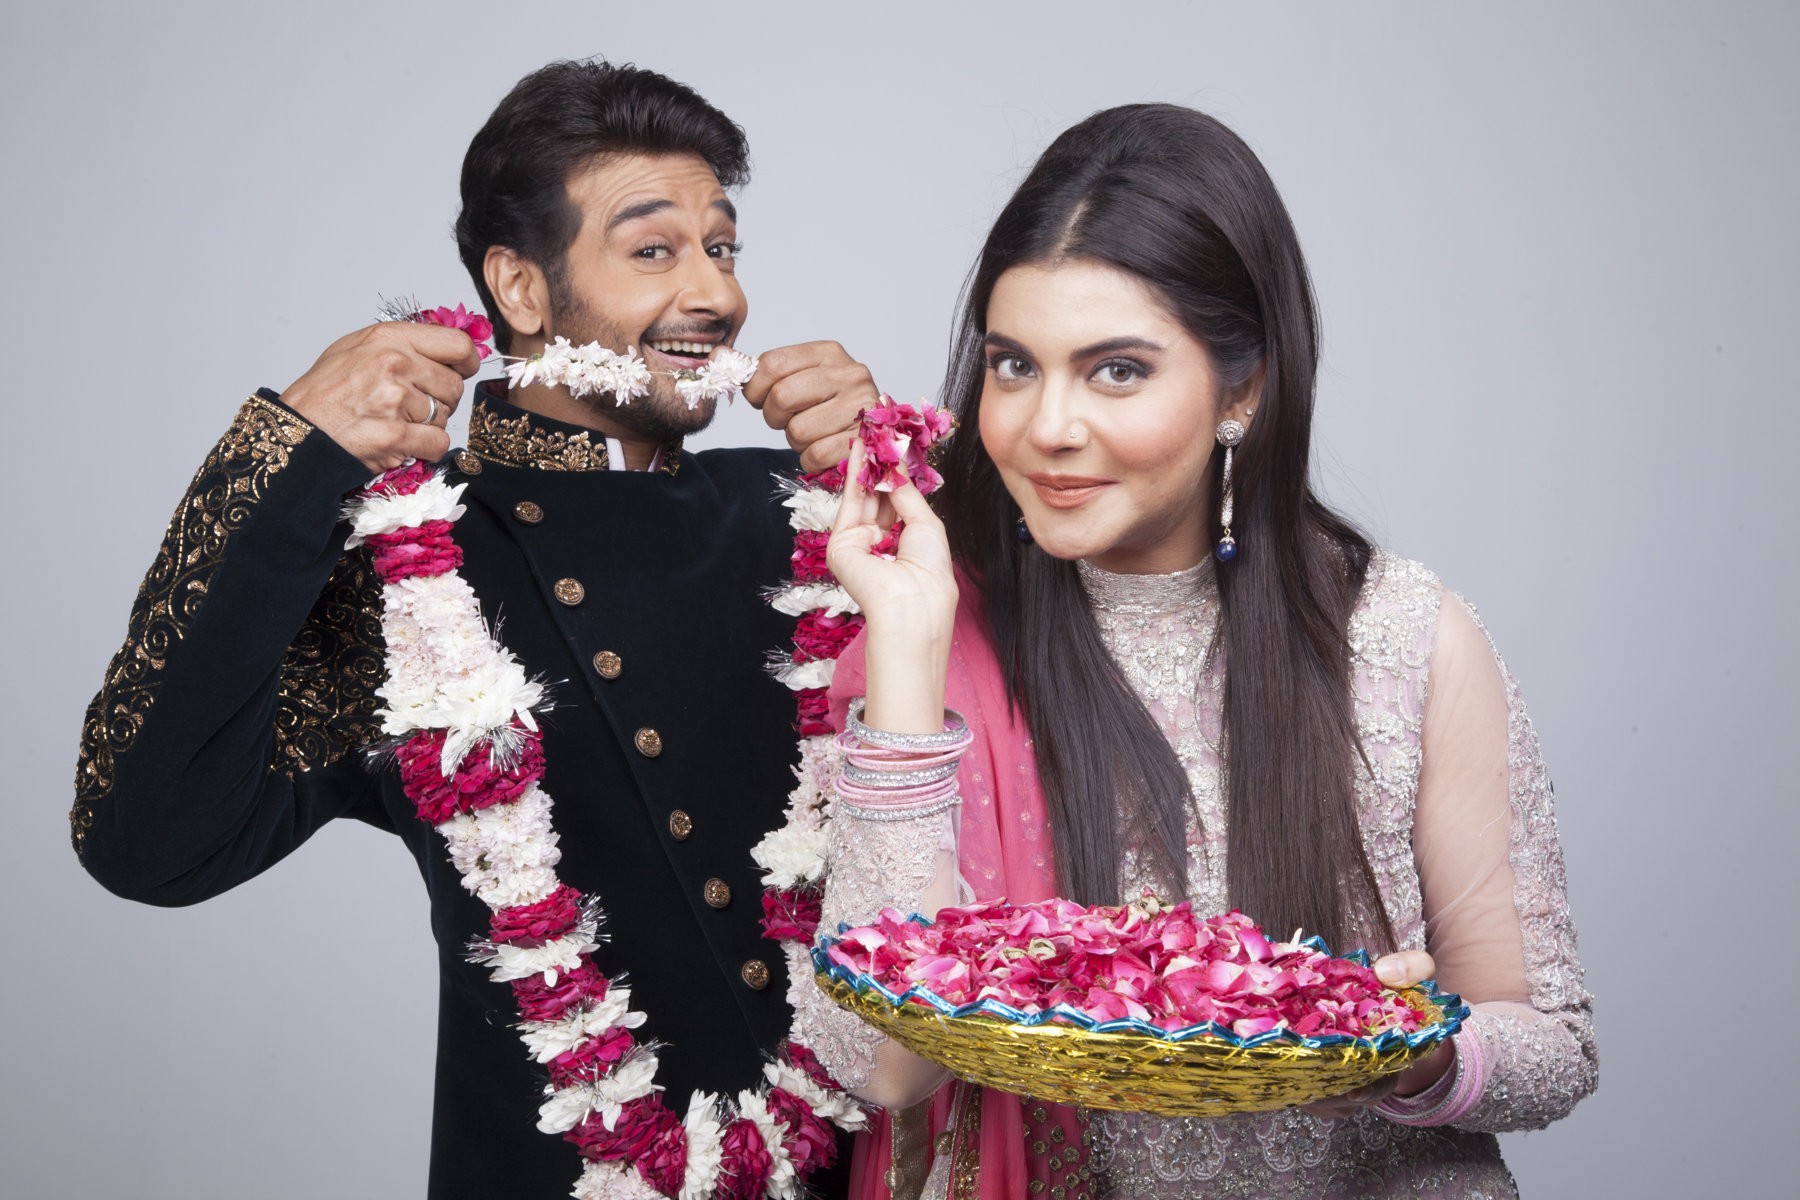 Live From Two Different Channels Nida Yasir As Larki Walas On ARY Digital And Faysal Qureshi Larkay Zindagi Will Be Highlighting Fun Filled